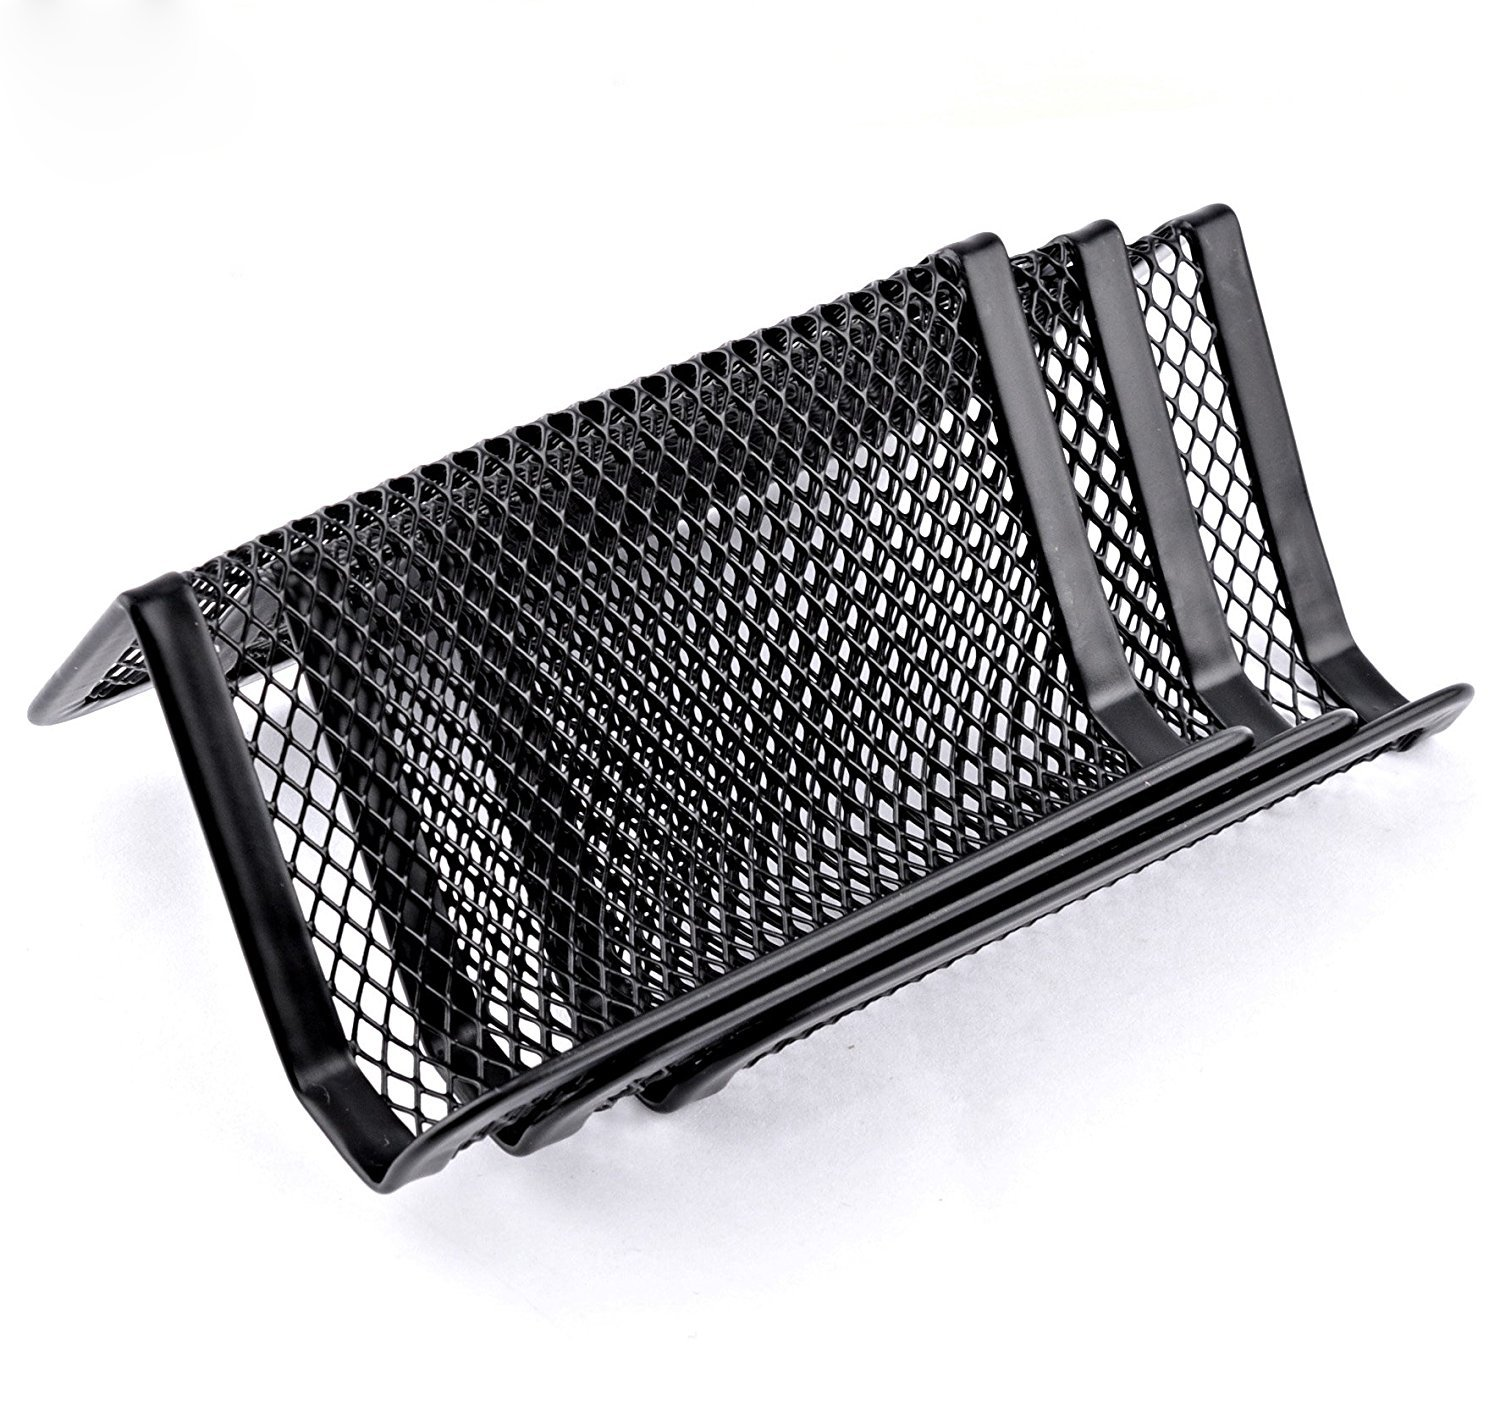 Amazon.com : MaxGear Metal Mesh Business Card Holder for Desk Office ...